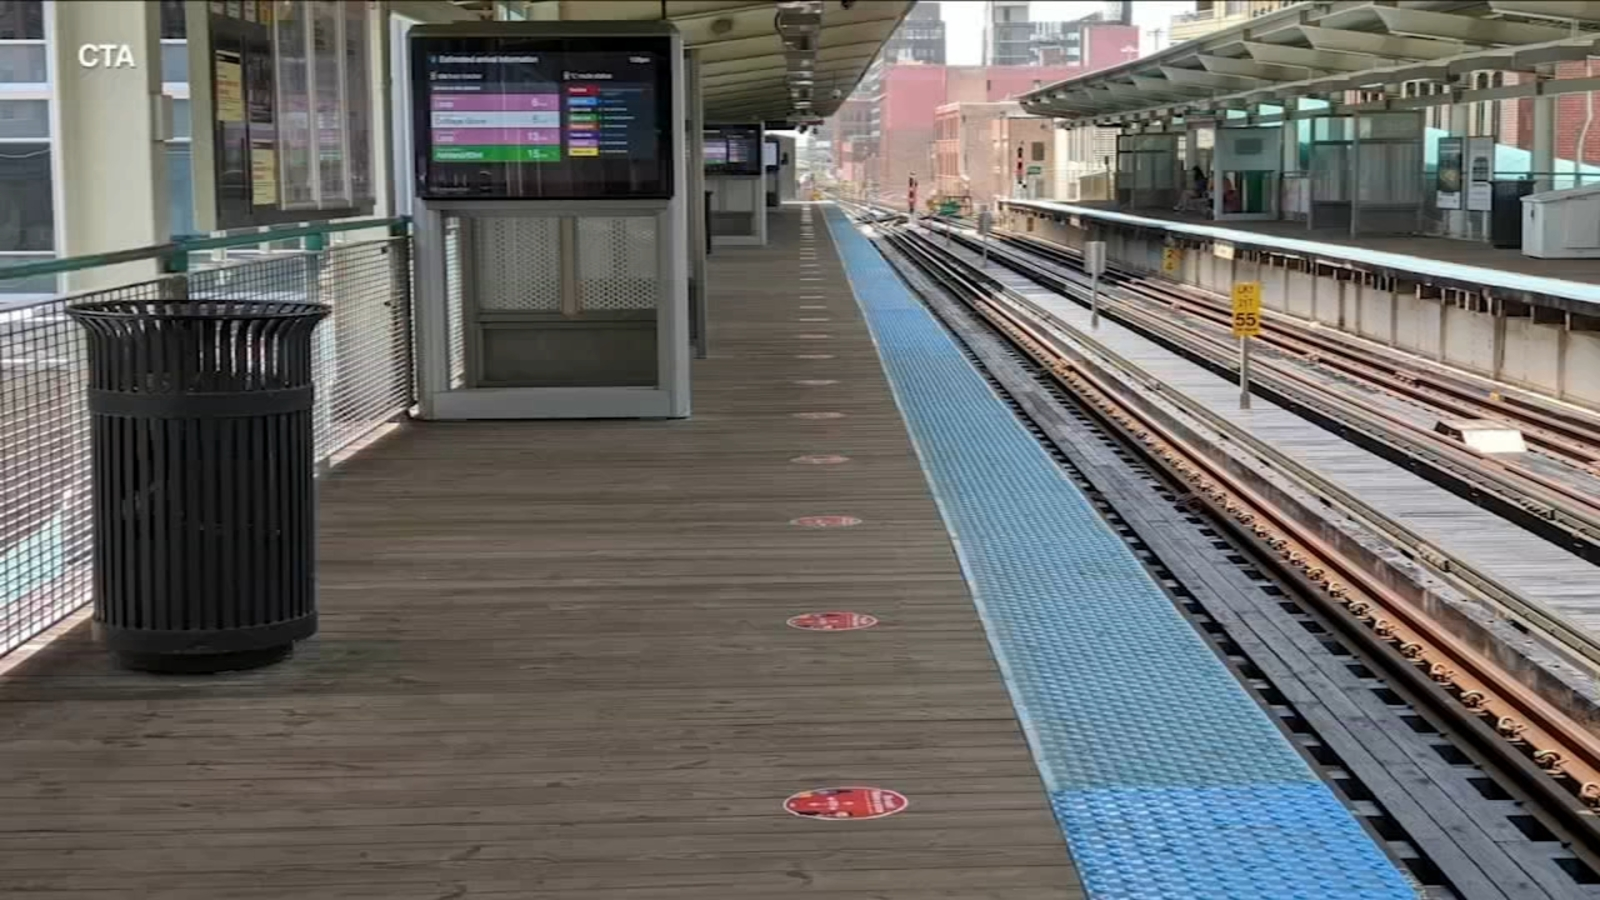 Coronavirus Chicago Cta Launches New Rider Dashboard To Plan For Crowding Bus Capacity Amid Reopening Abc7 Chicago